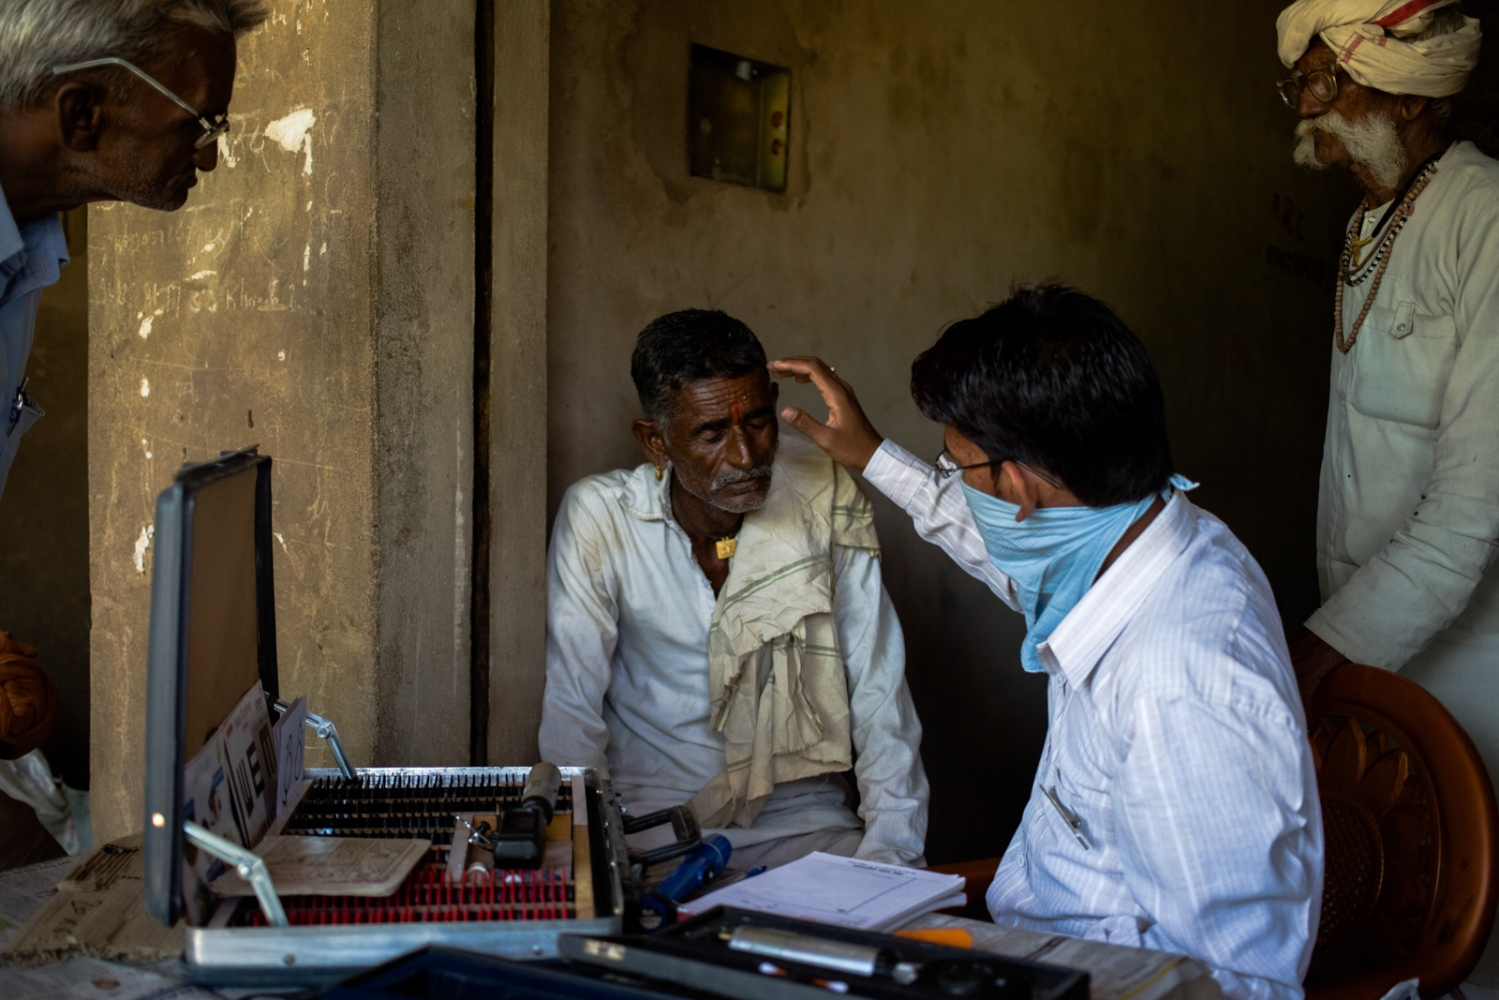 Indian eye spcialist Dindyal Pirjapat (2R), 25, carries out an examination on villager Saidu Ram (C), 52, before referring him for a cornea consultation, as patient Bhuru Shay (R), 68, waits to be seen at a vision field camp run by the eye hospital in Nagledi village, Kusalgad, in Rajasthan's Alwar district on September 26, 2014.